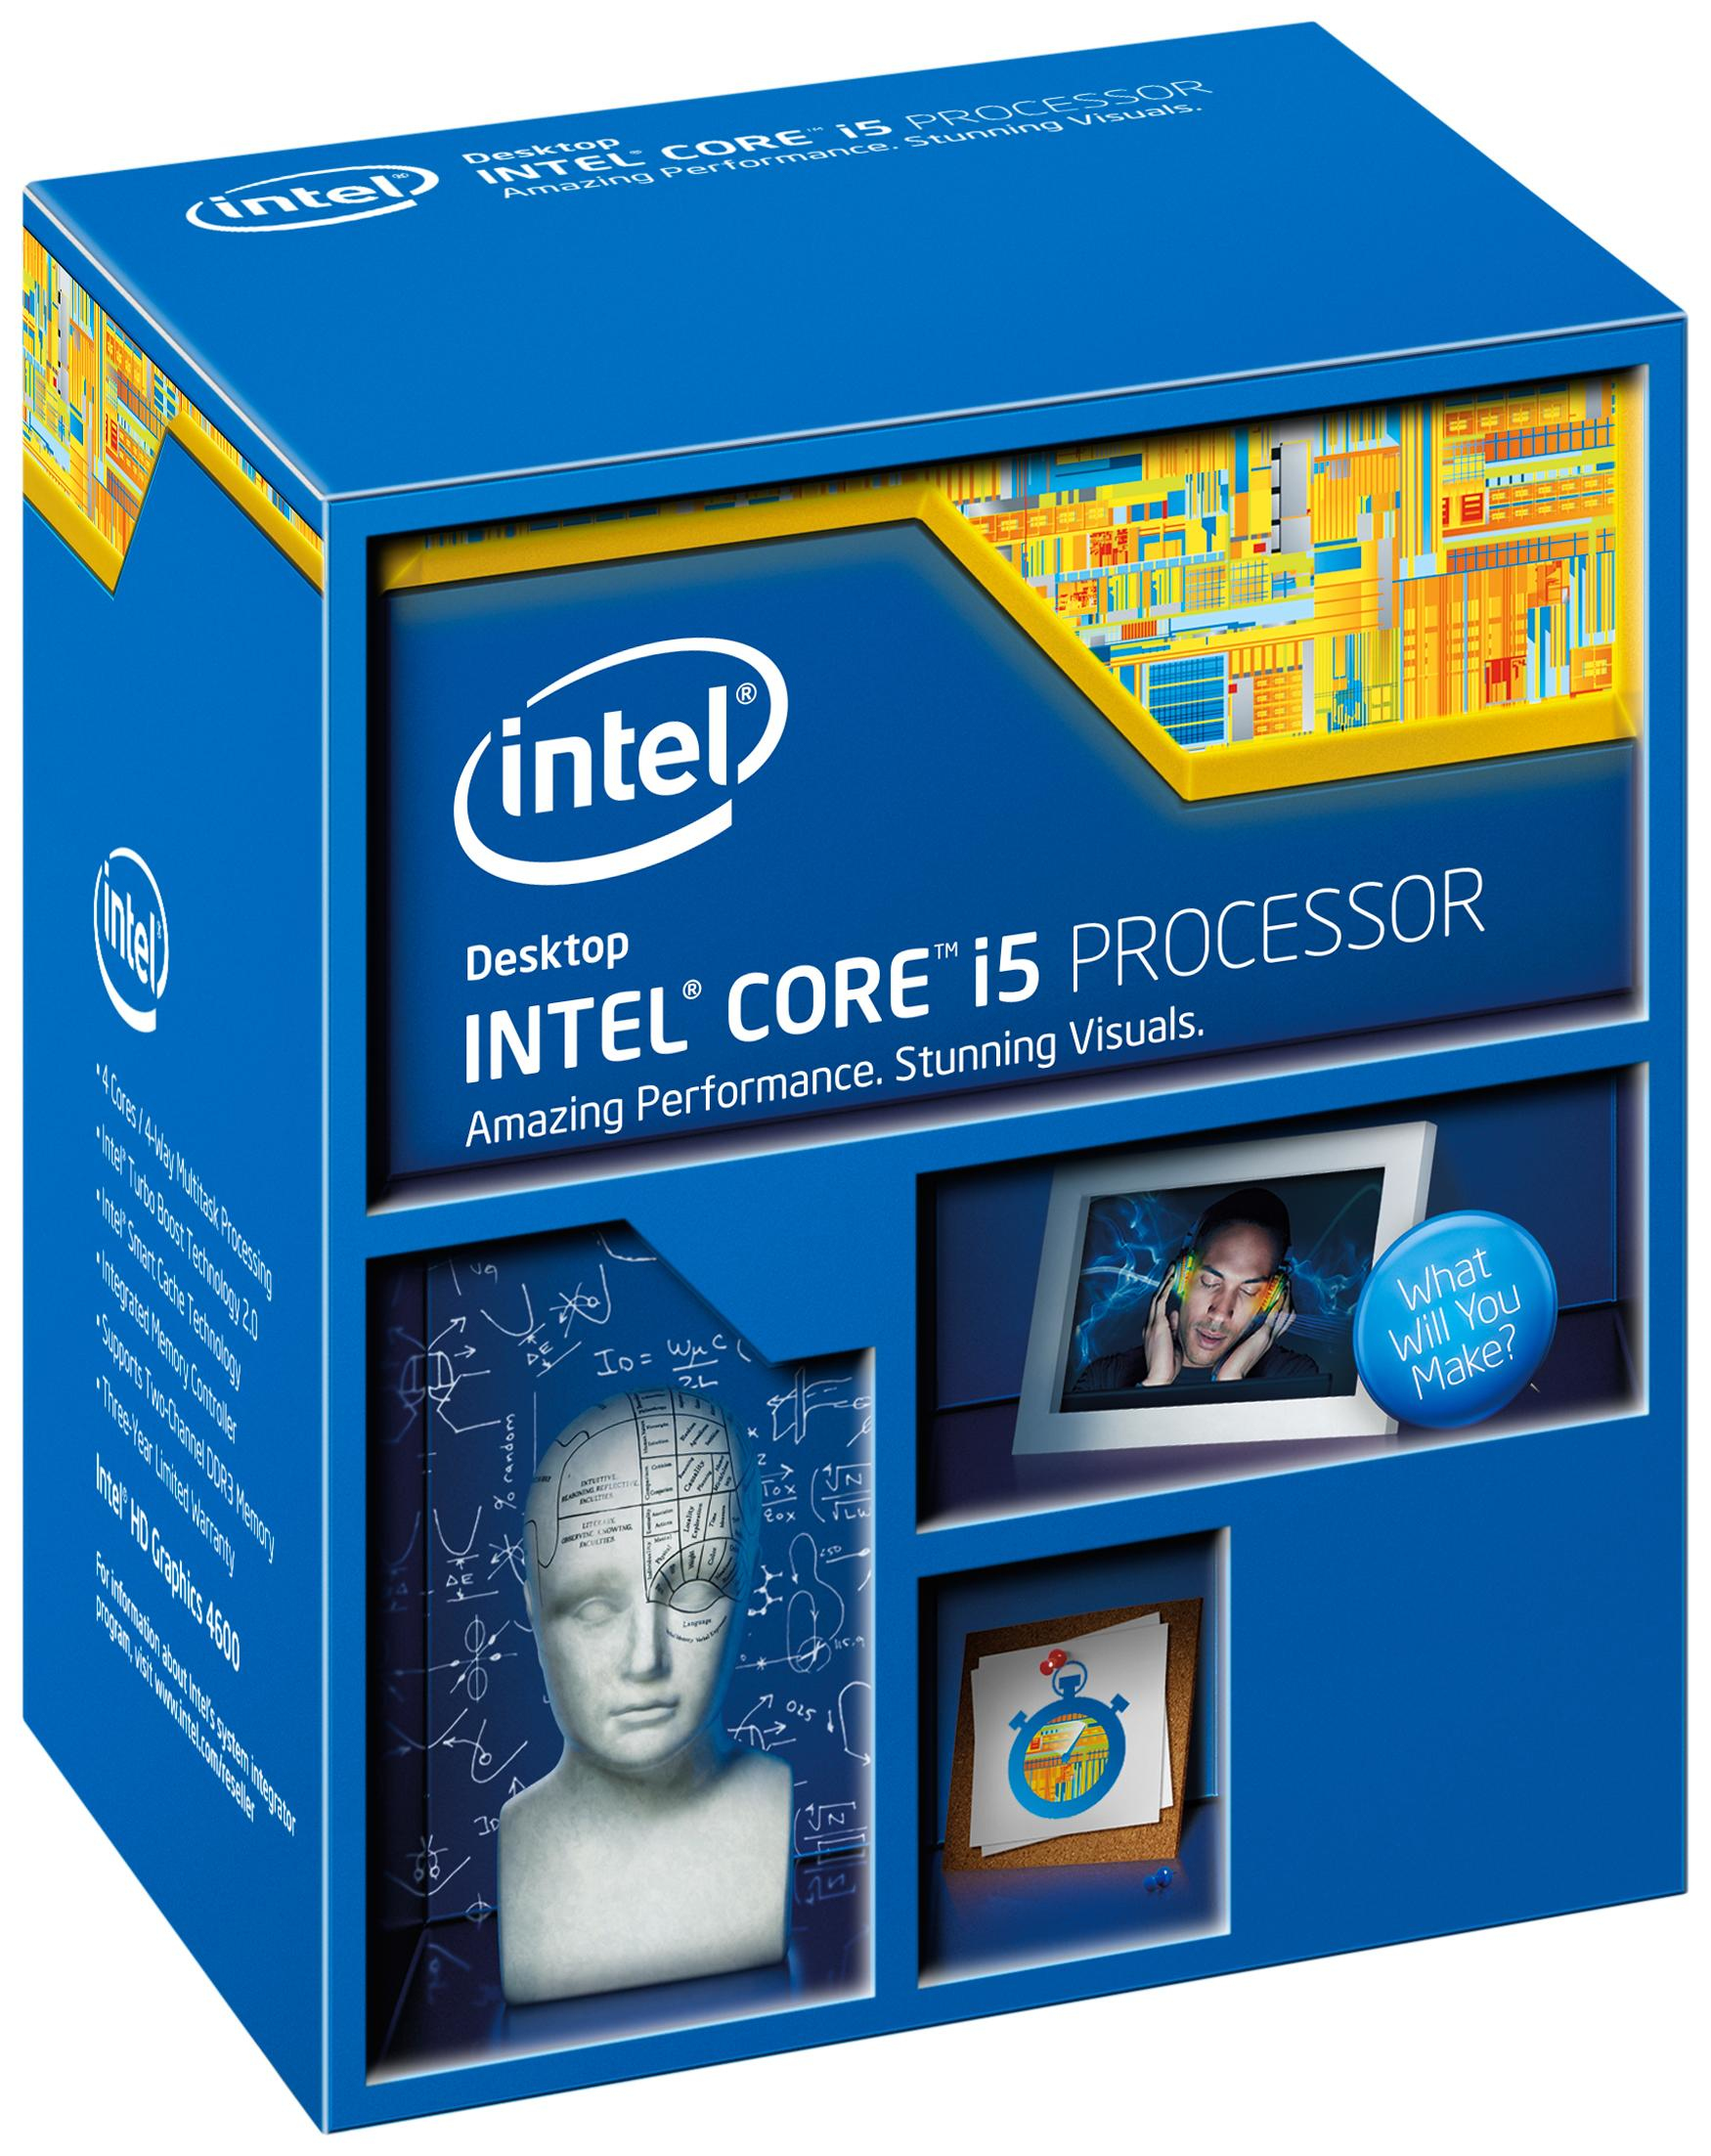 INTEL I5-4590S 3,0 GHz LGA1150 6MB Cache Low Power Boxed CPU